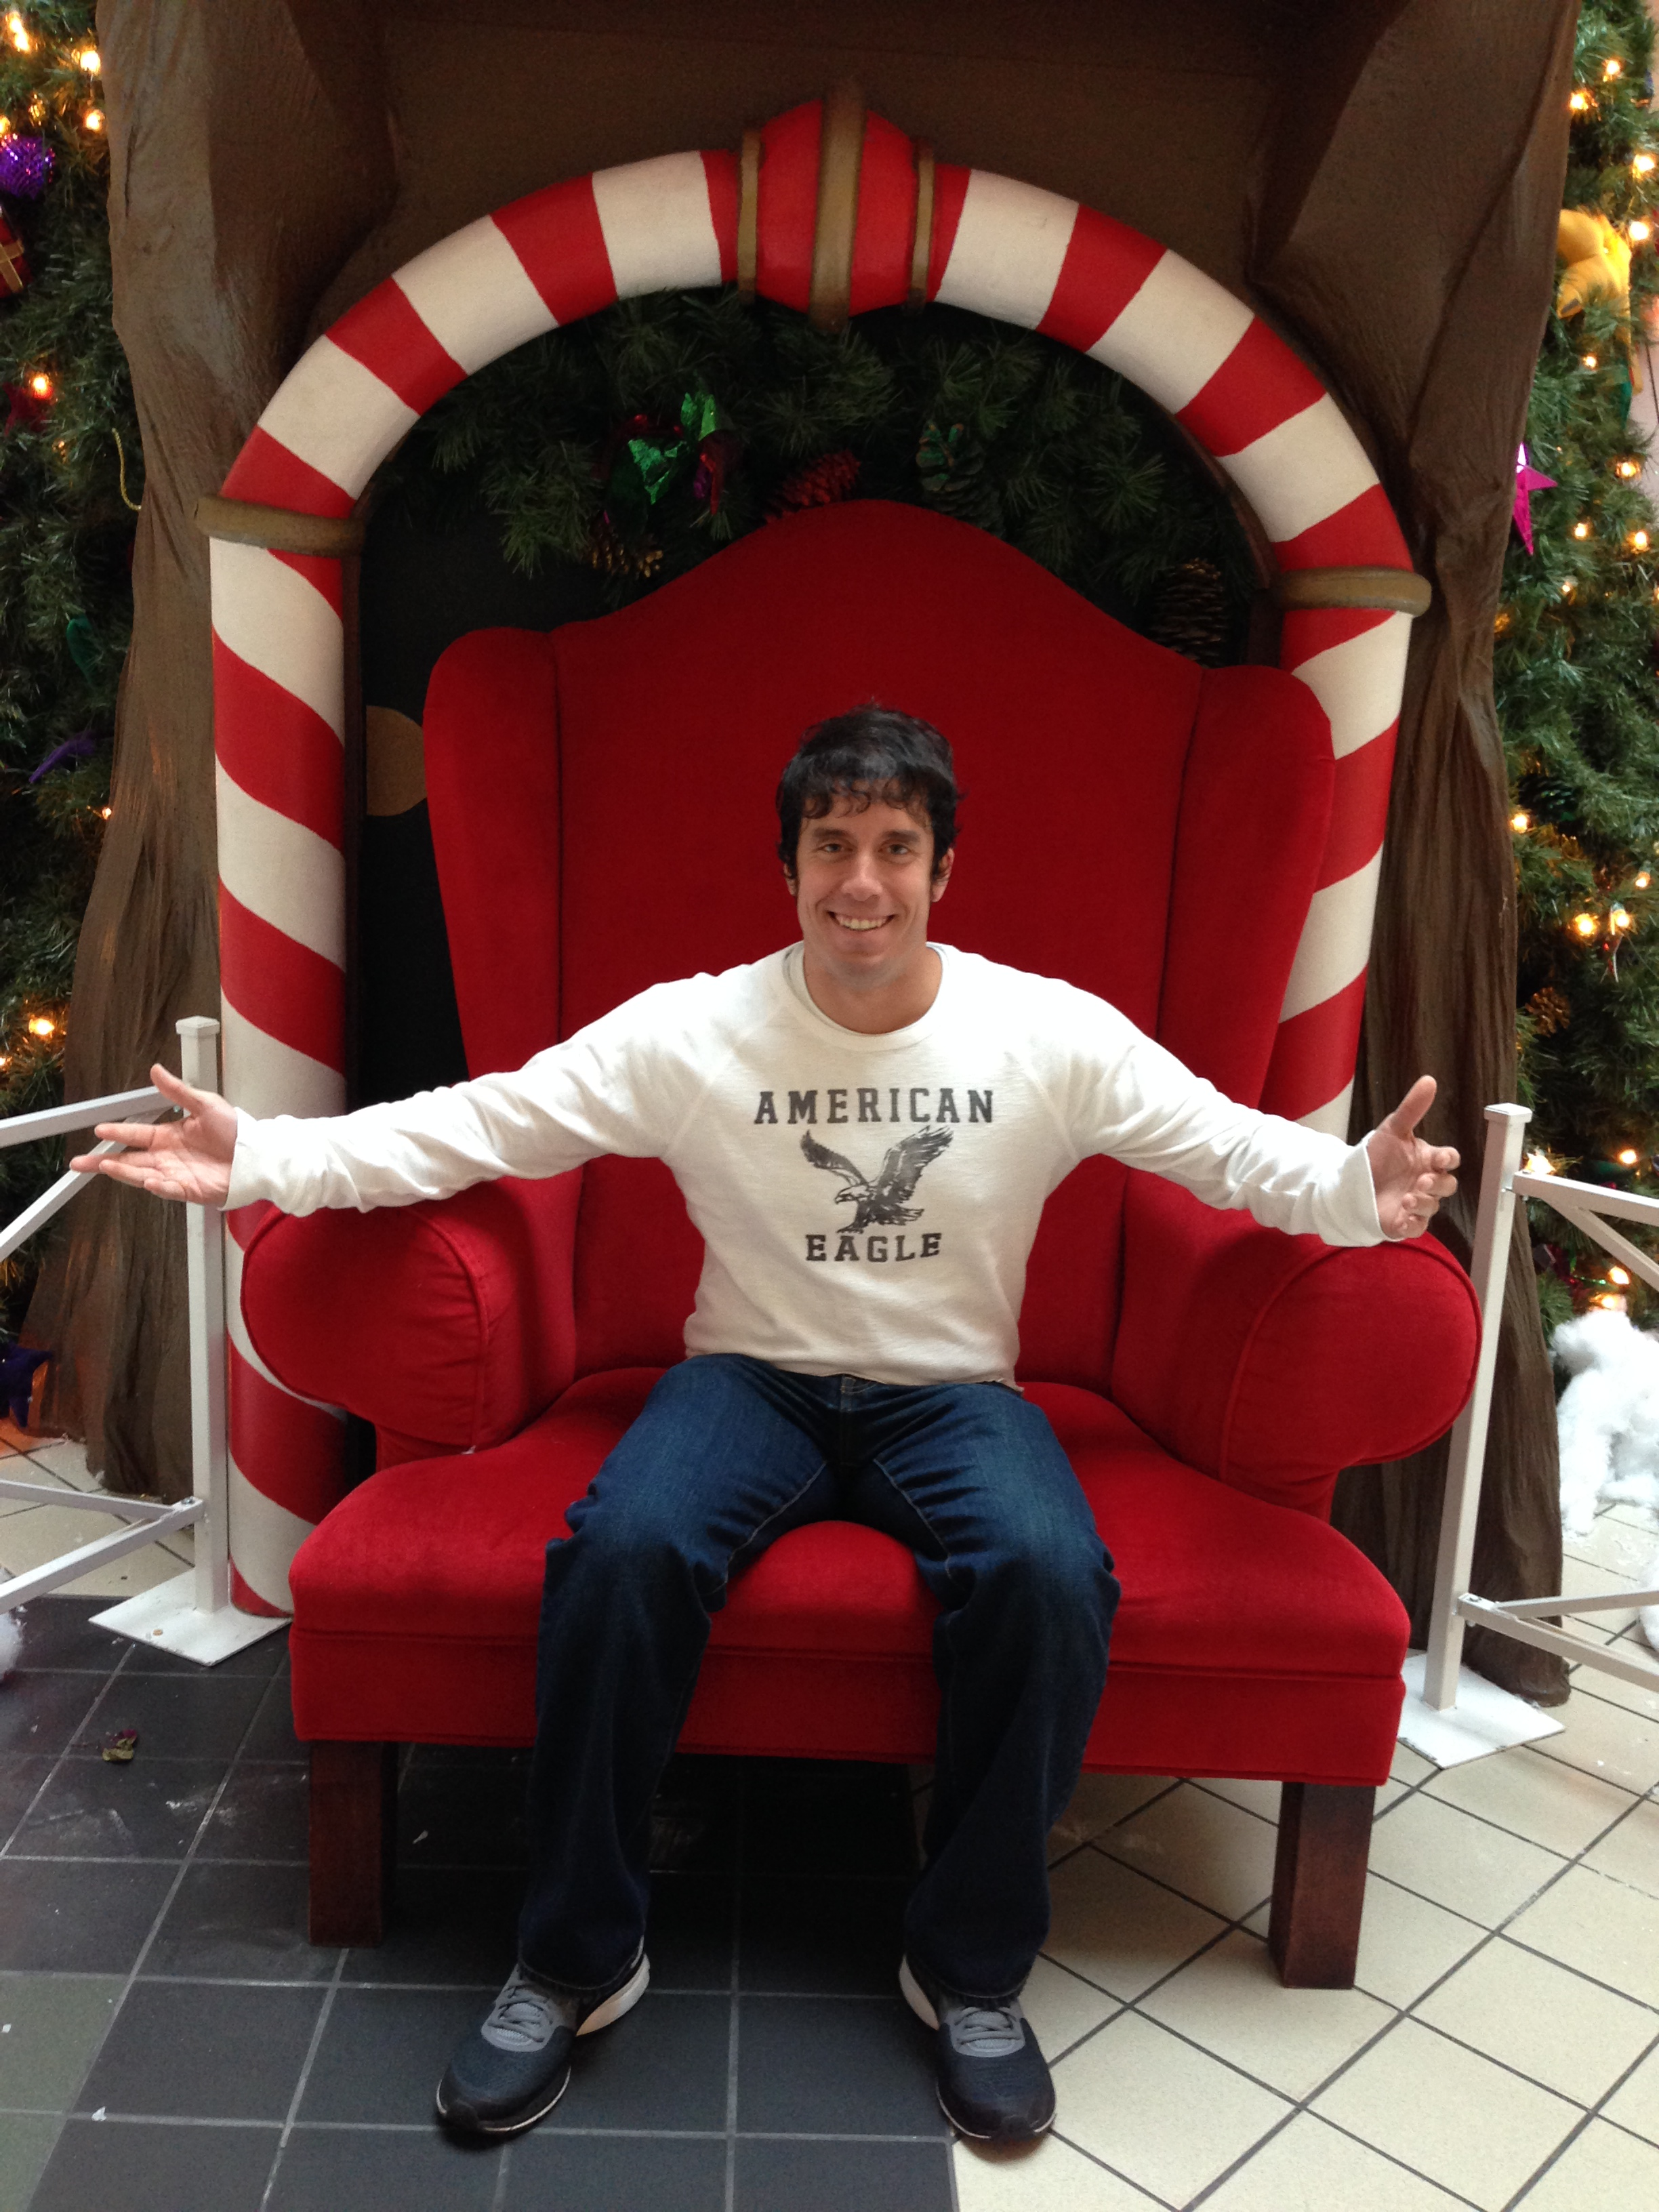 A couple days after Christmas I sat in Santa's throne in Northtown Mall.